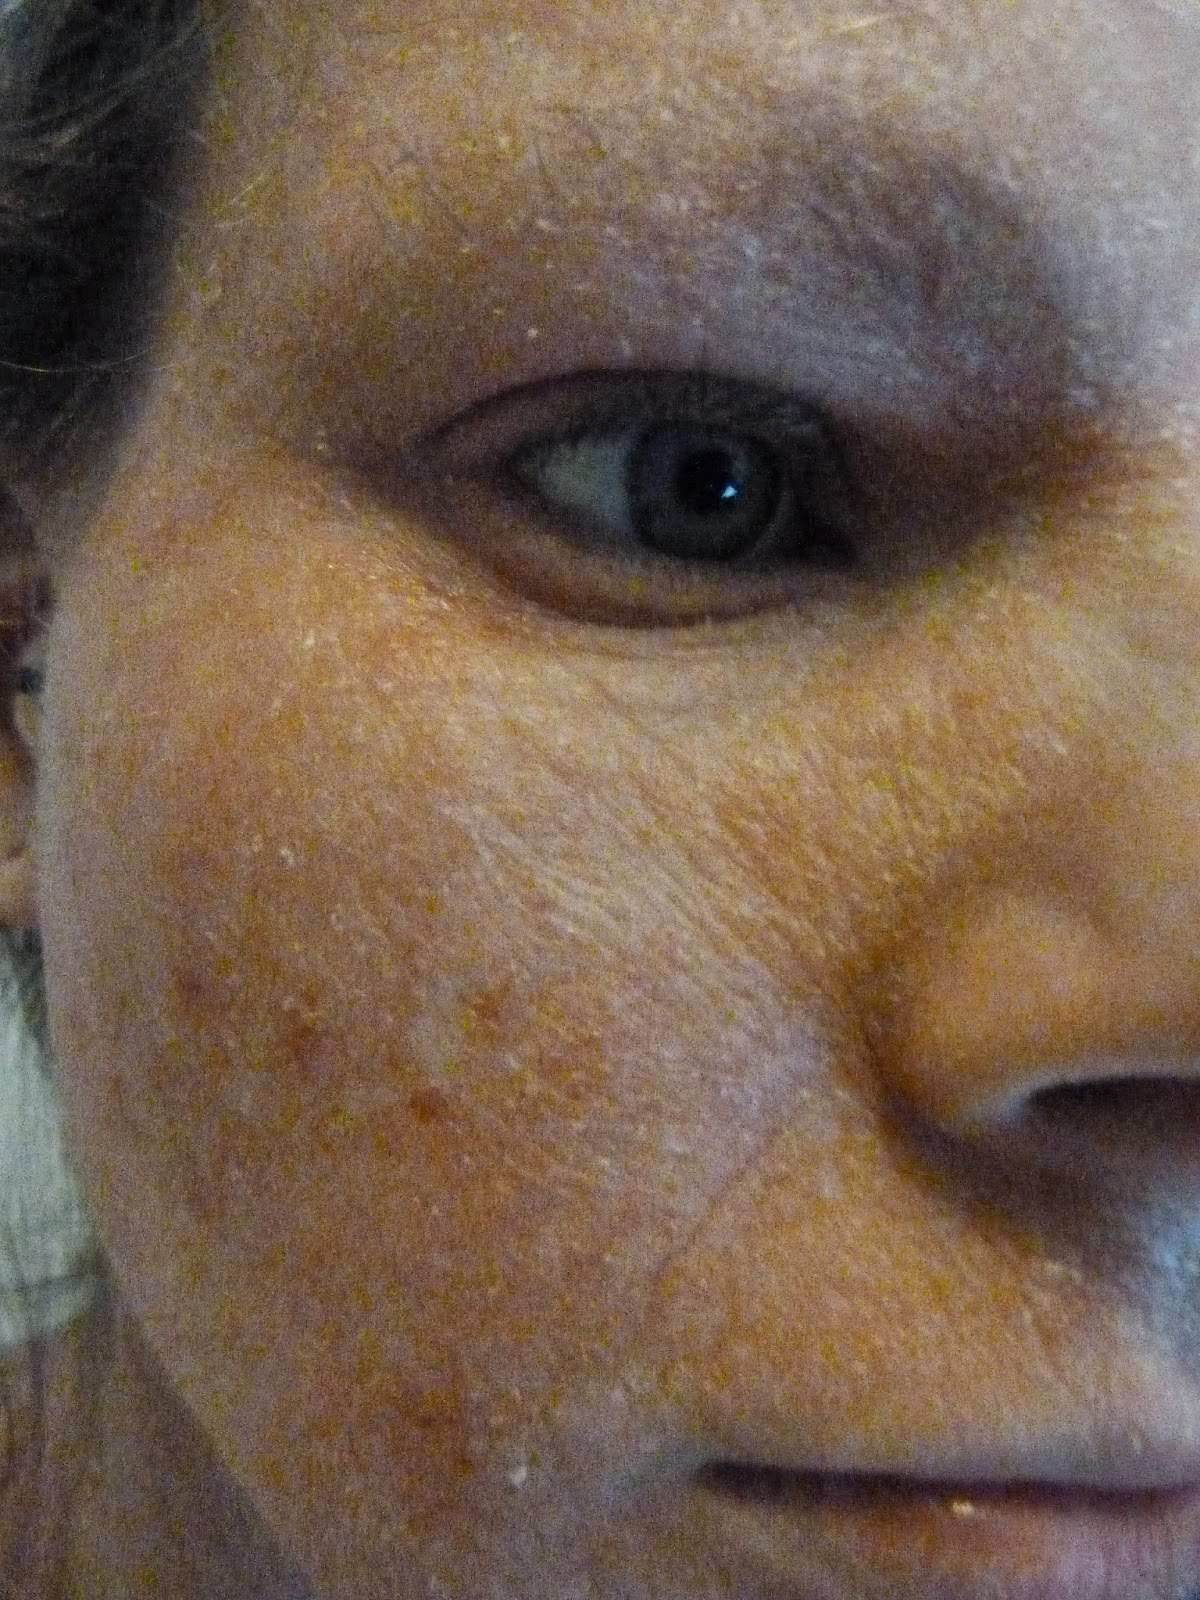 post-topical steroid hypopigmentation